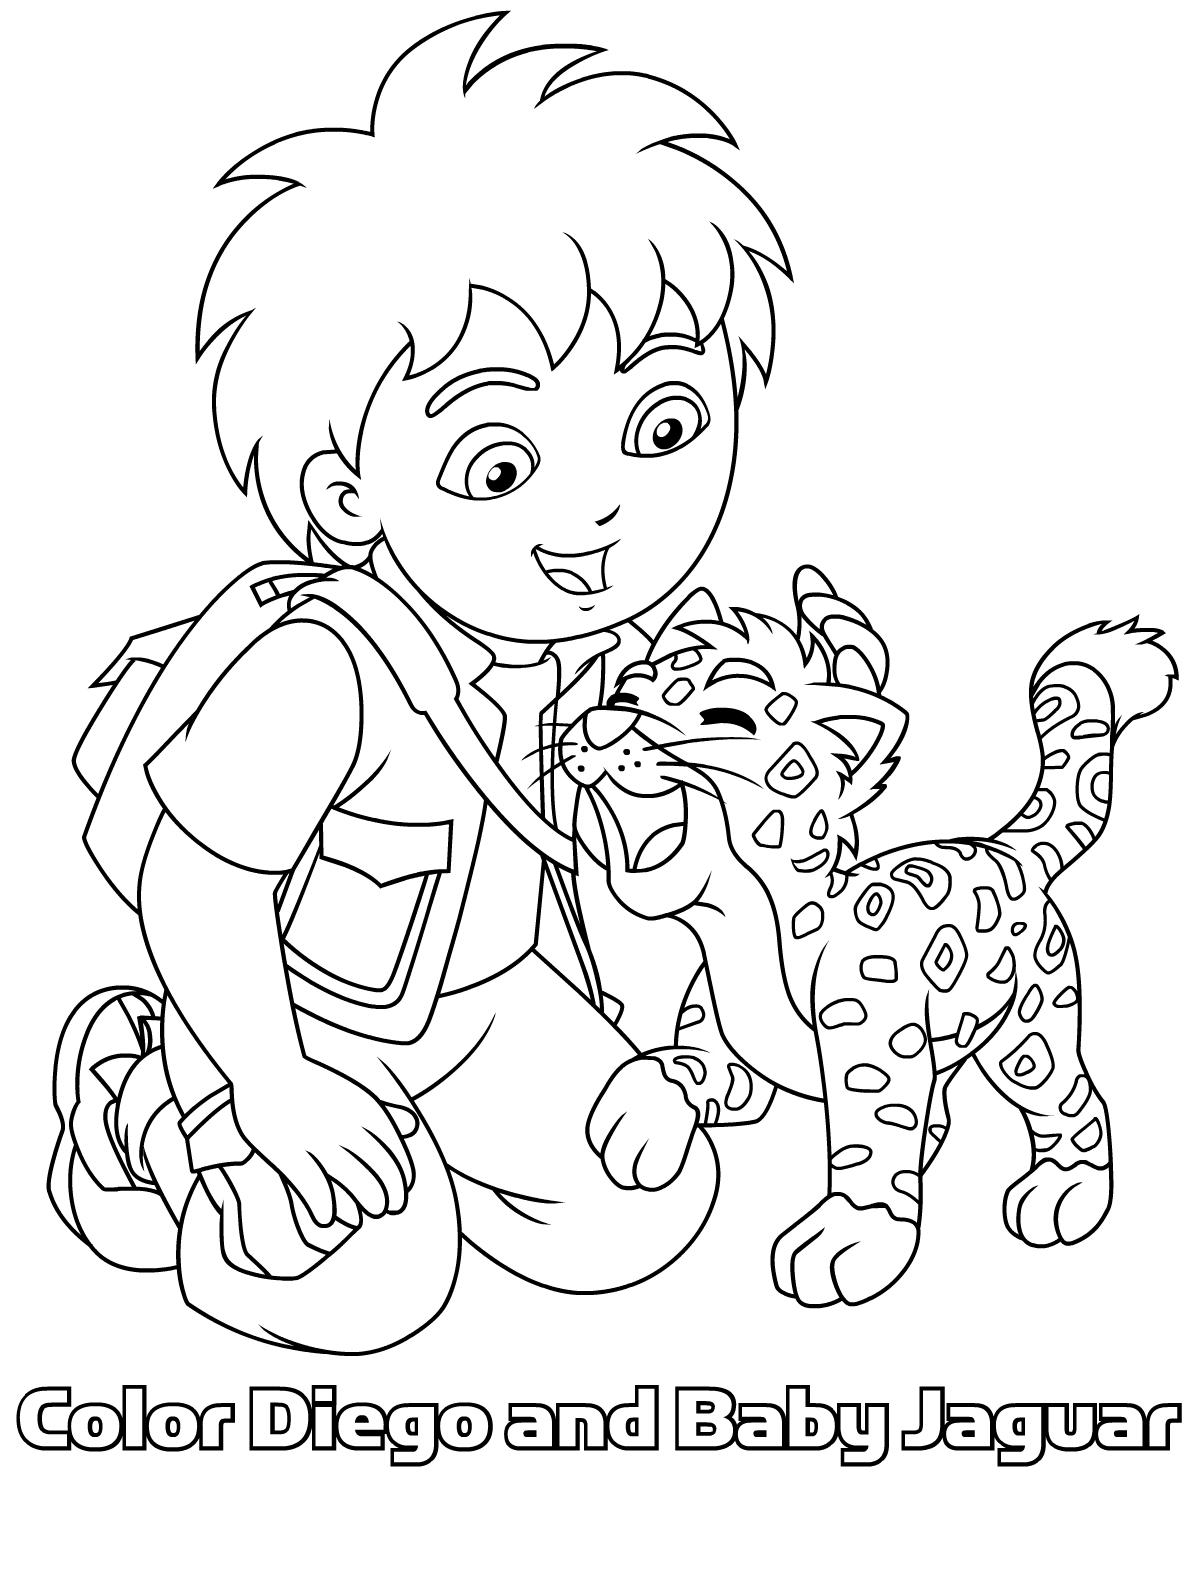 colouring pages van : Diego Coloring Pages Free